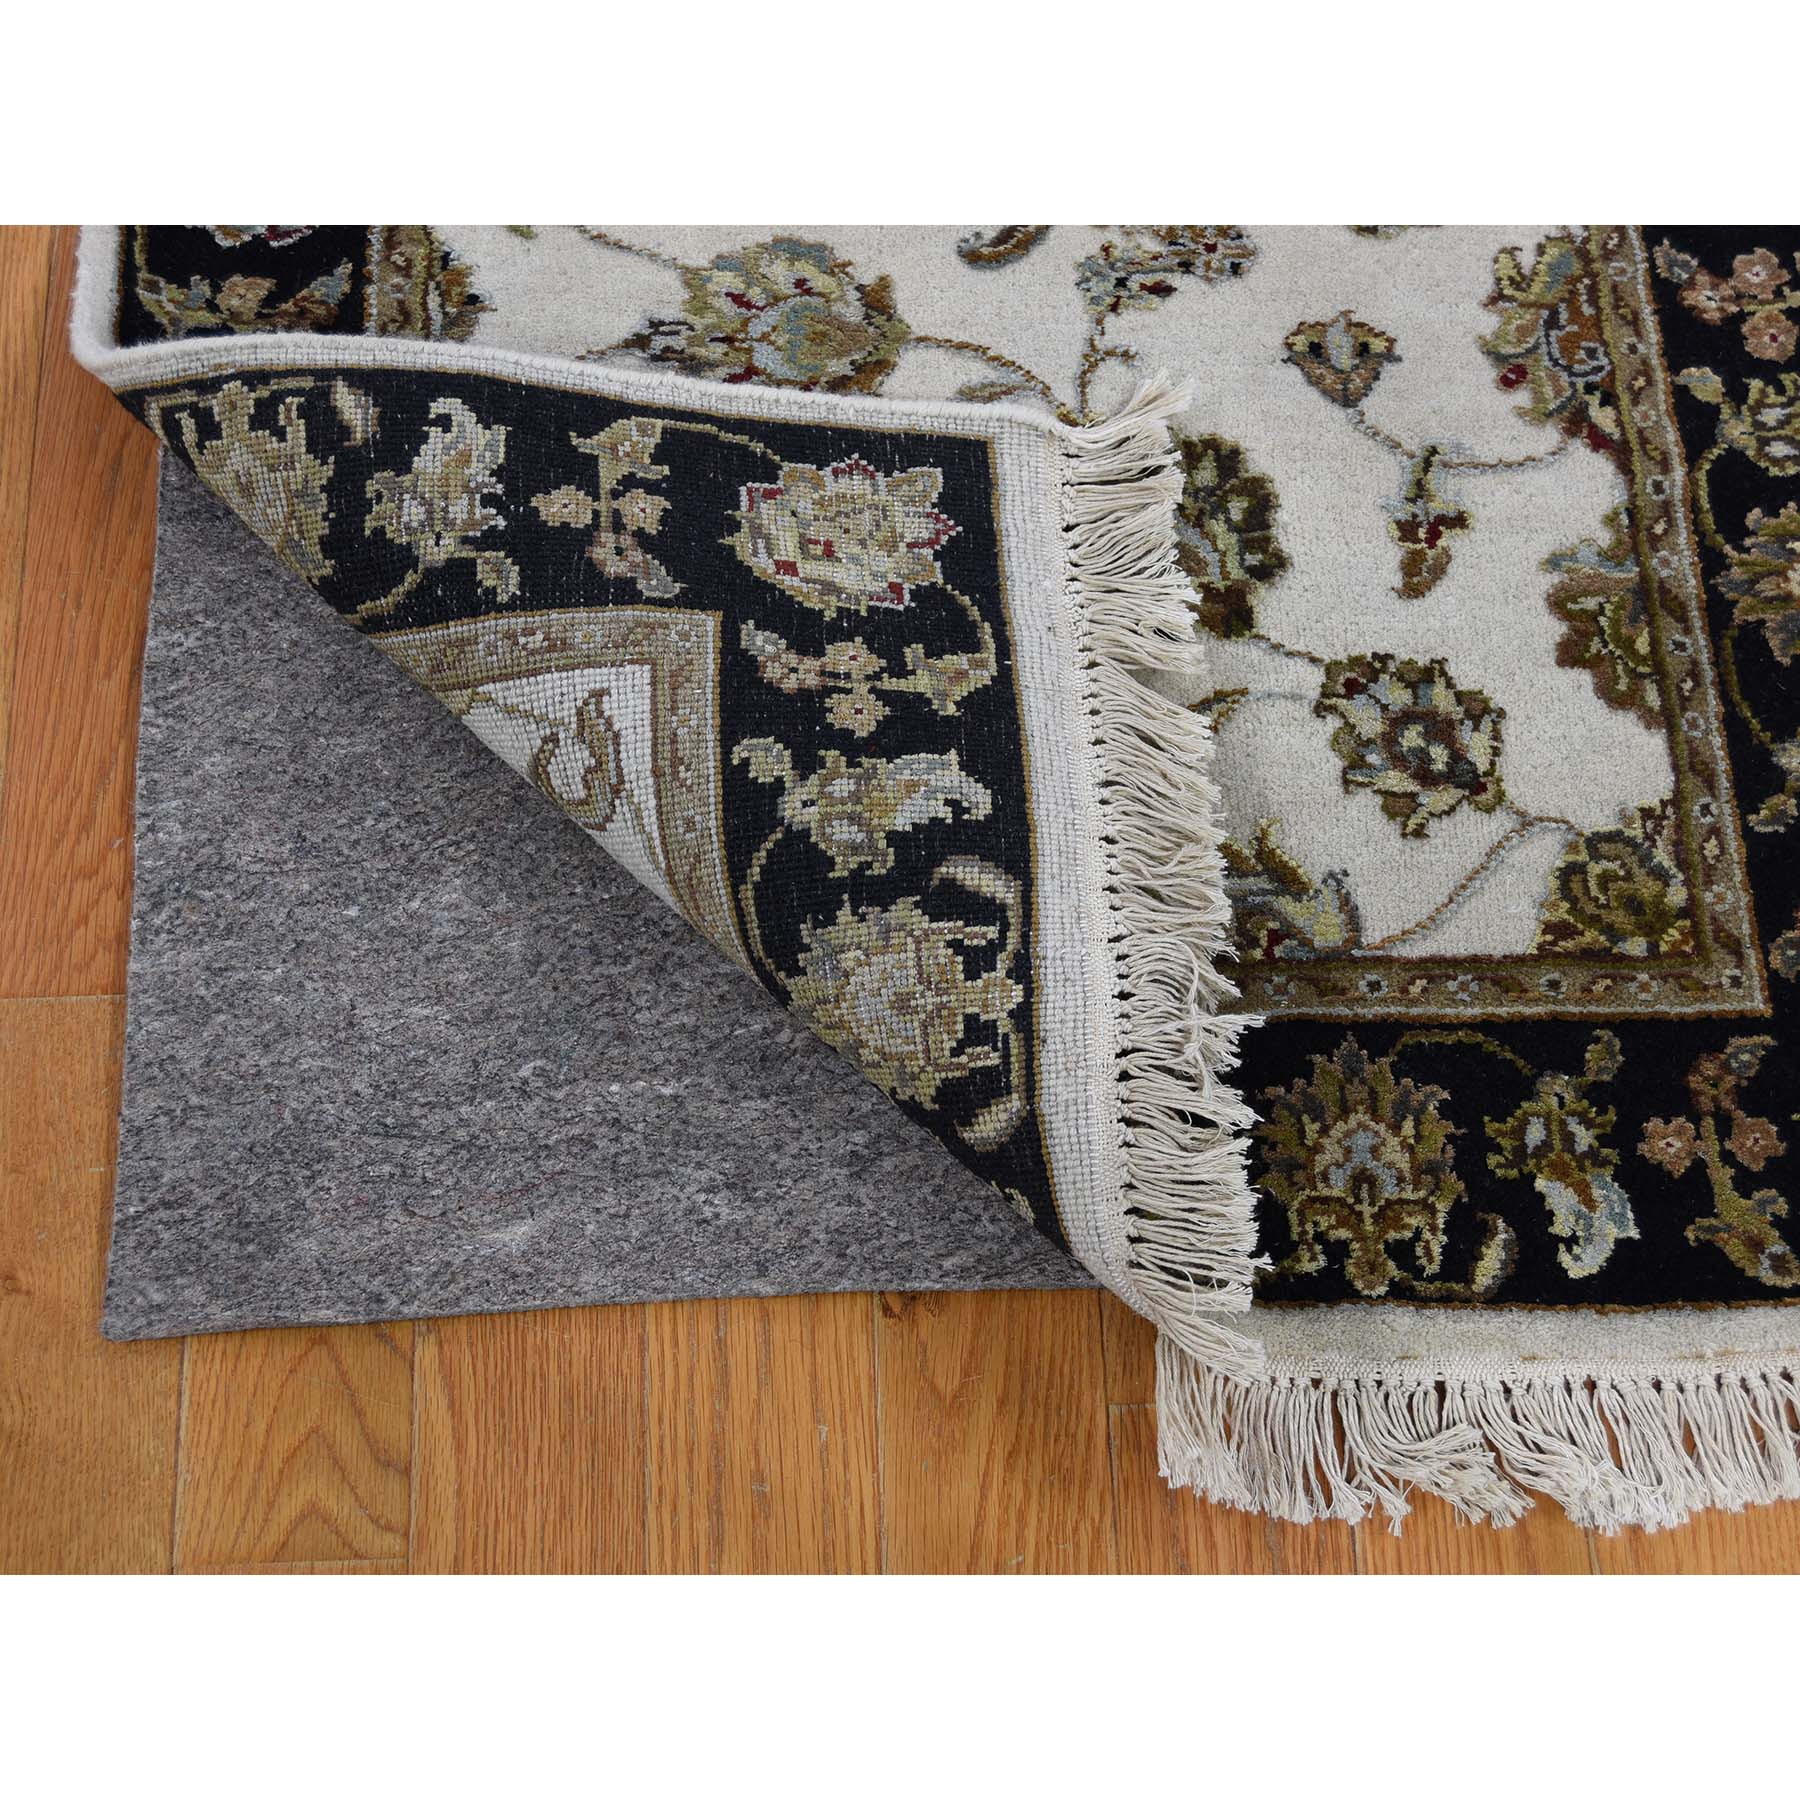 2-7 x16- Rajasthan Half Wool and Half Silk XL Runner Hand-Knotted Oriental Rug